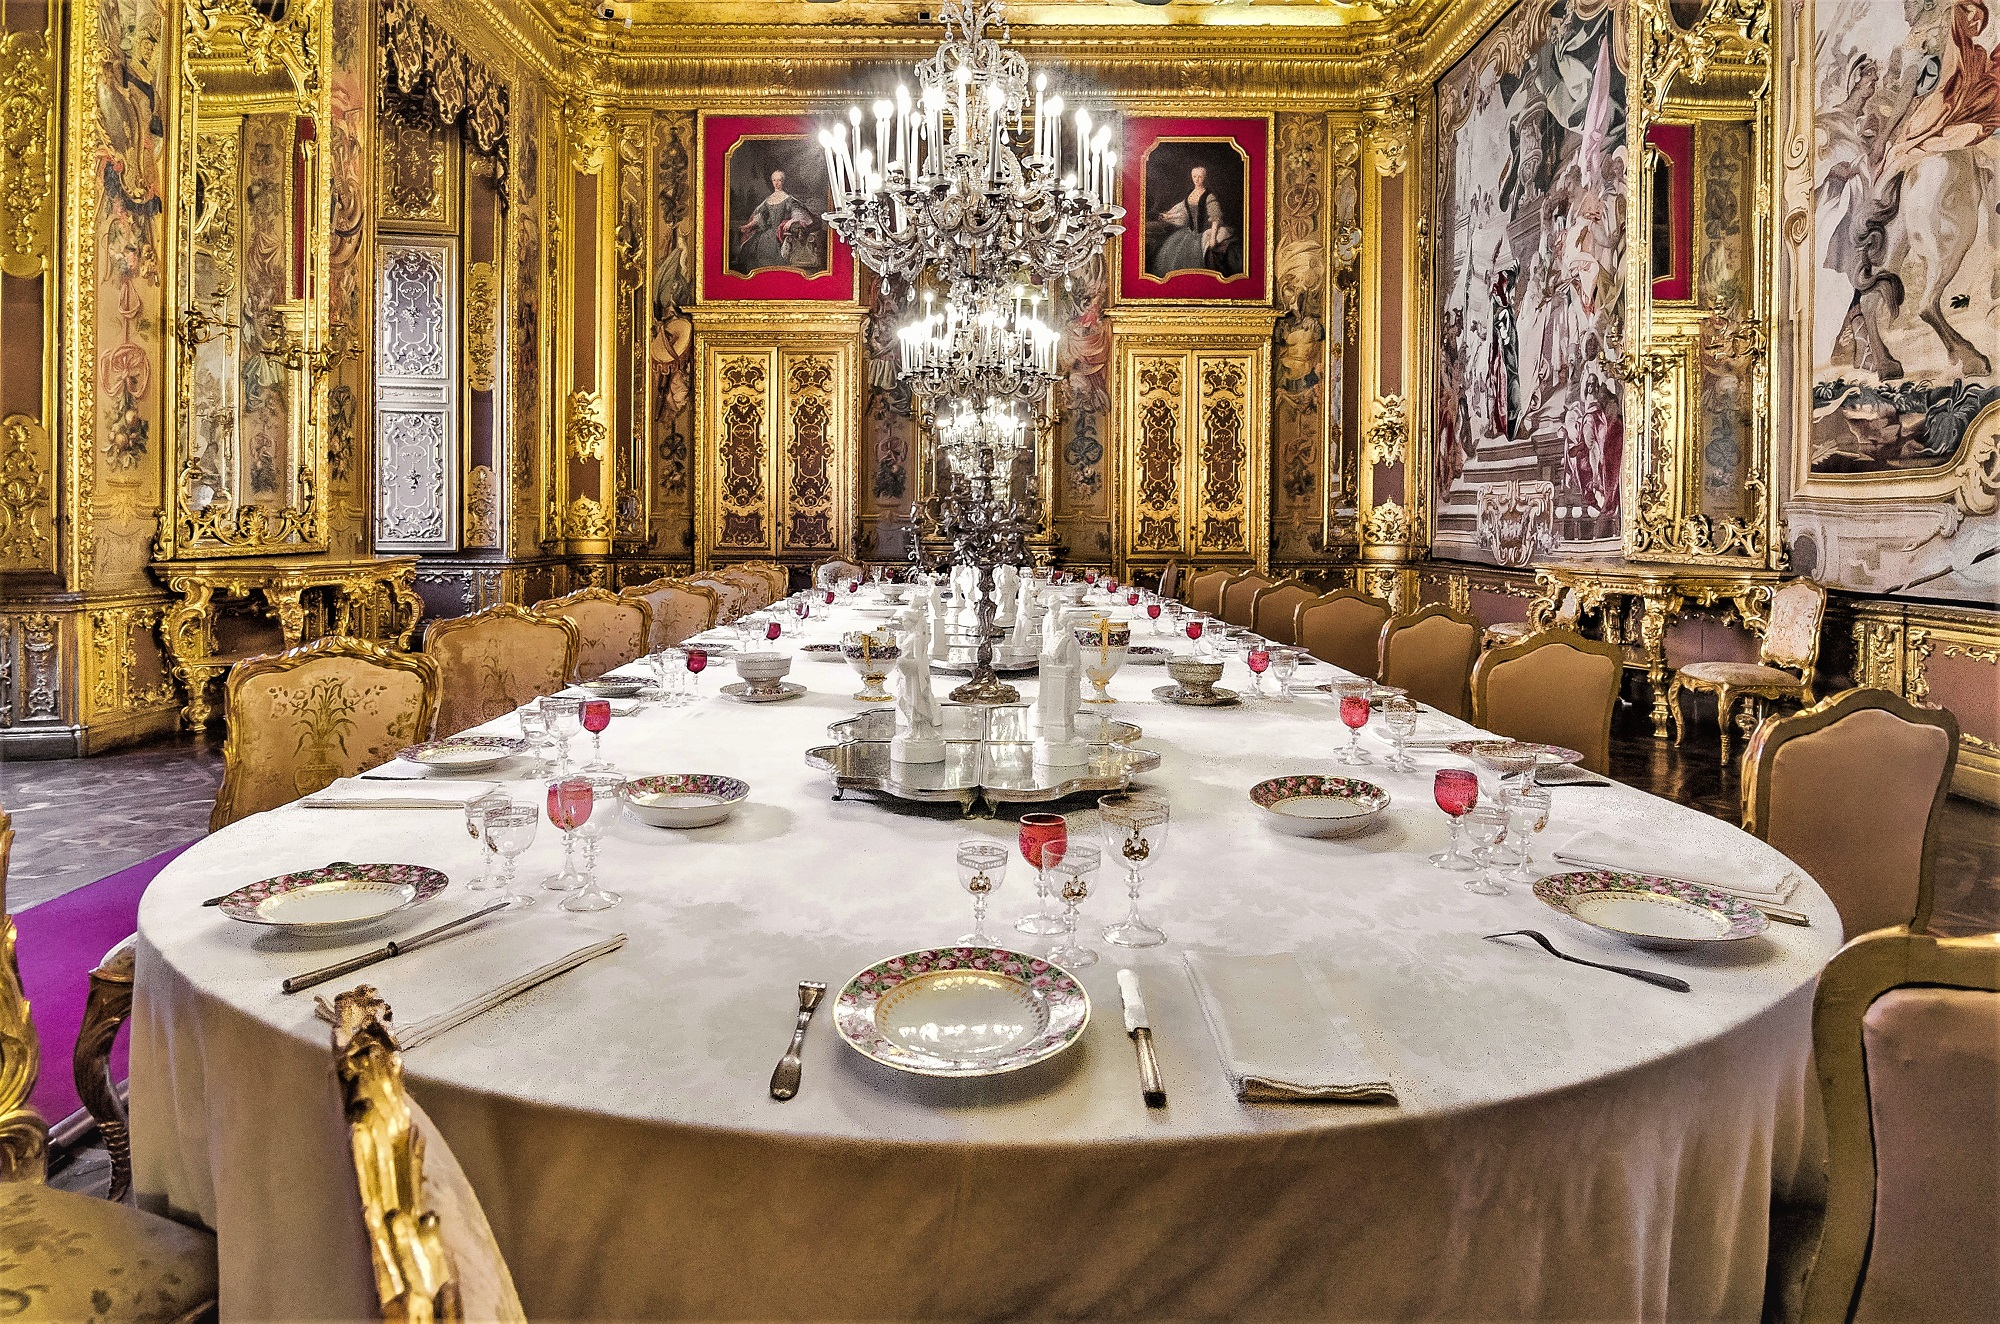 The dining room......